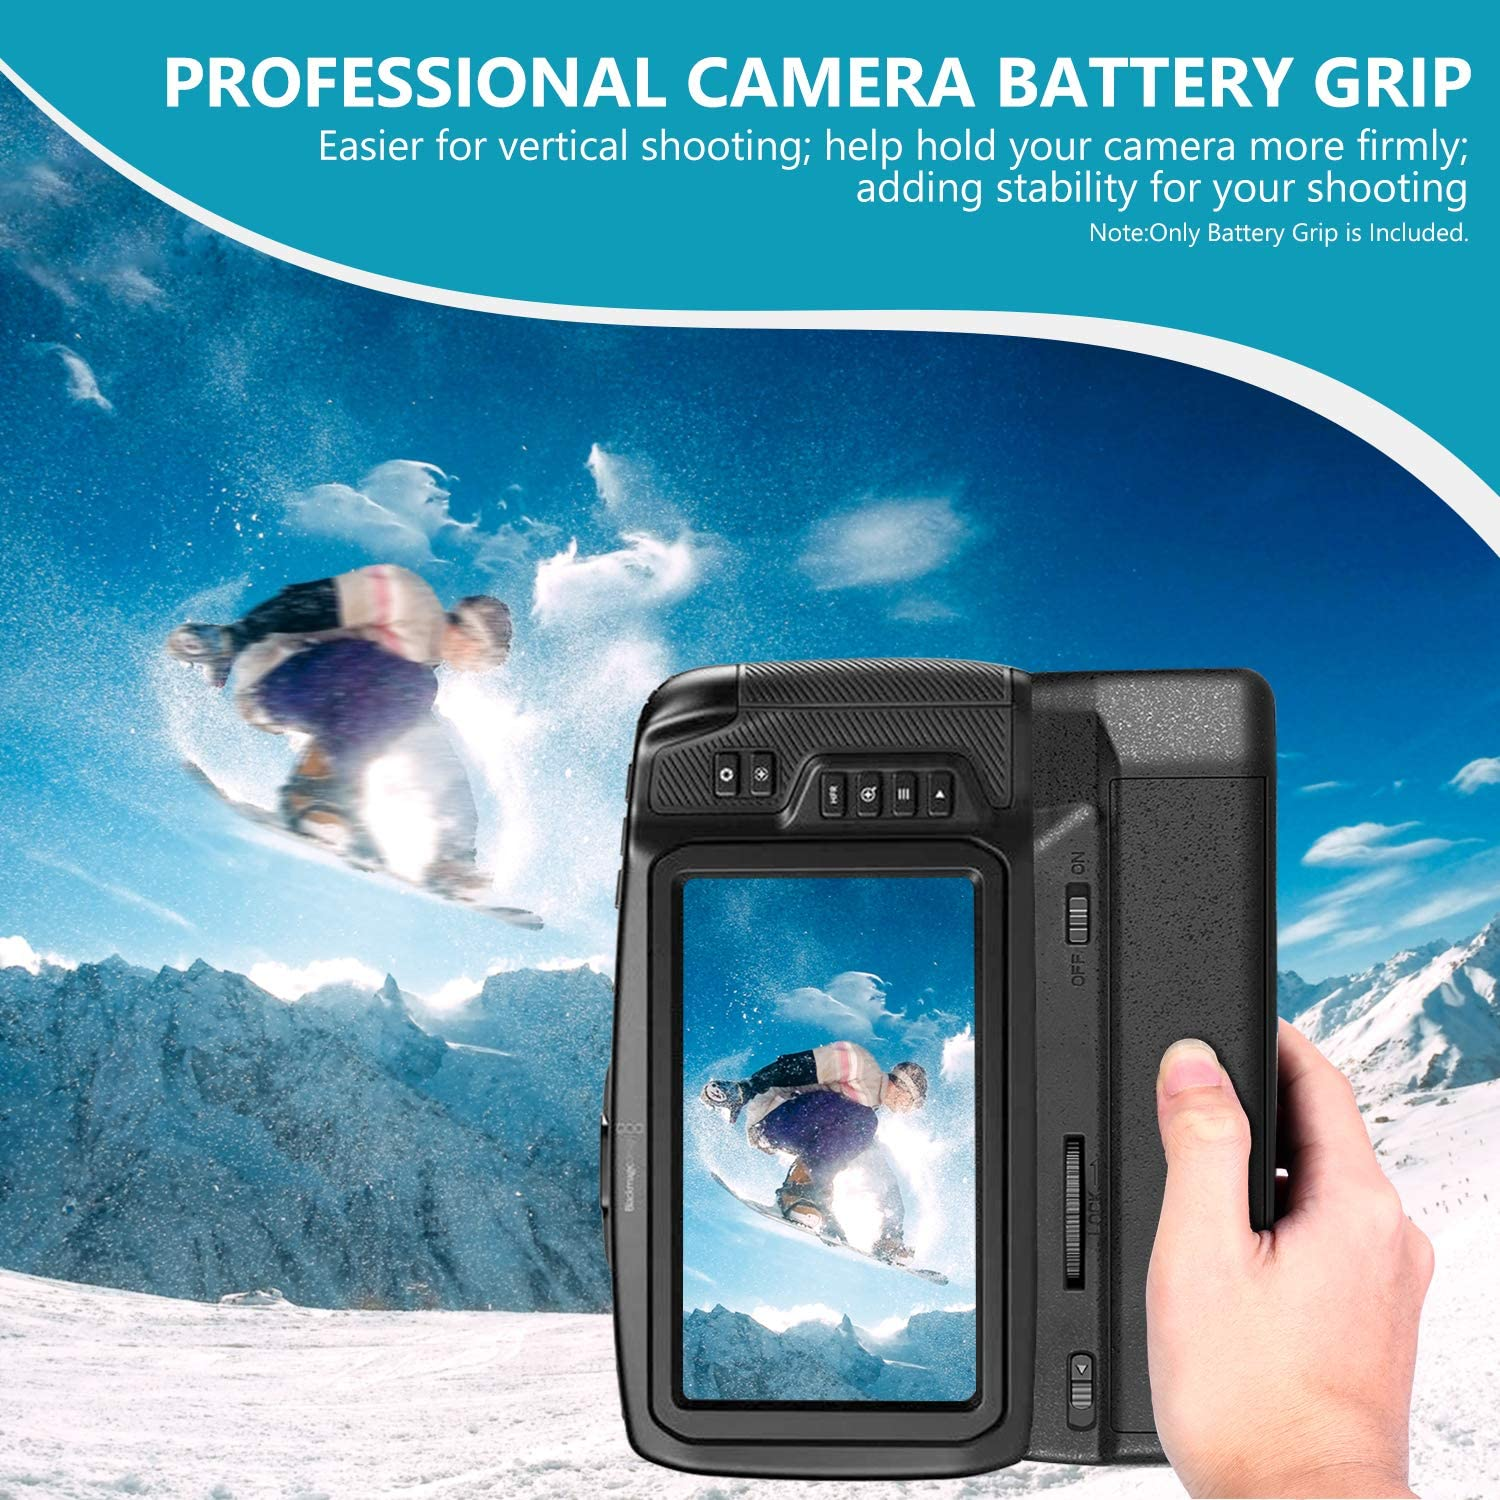 Only Works With Lp E6 E6n Battery Battery Not Included Neewer Hm Battery Grip Compatible With Blackmagic Pocket Cinema Camera 6k 4k With Type C Usb Adapter Camera Photo Digital Camera Accessories